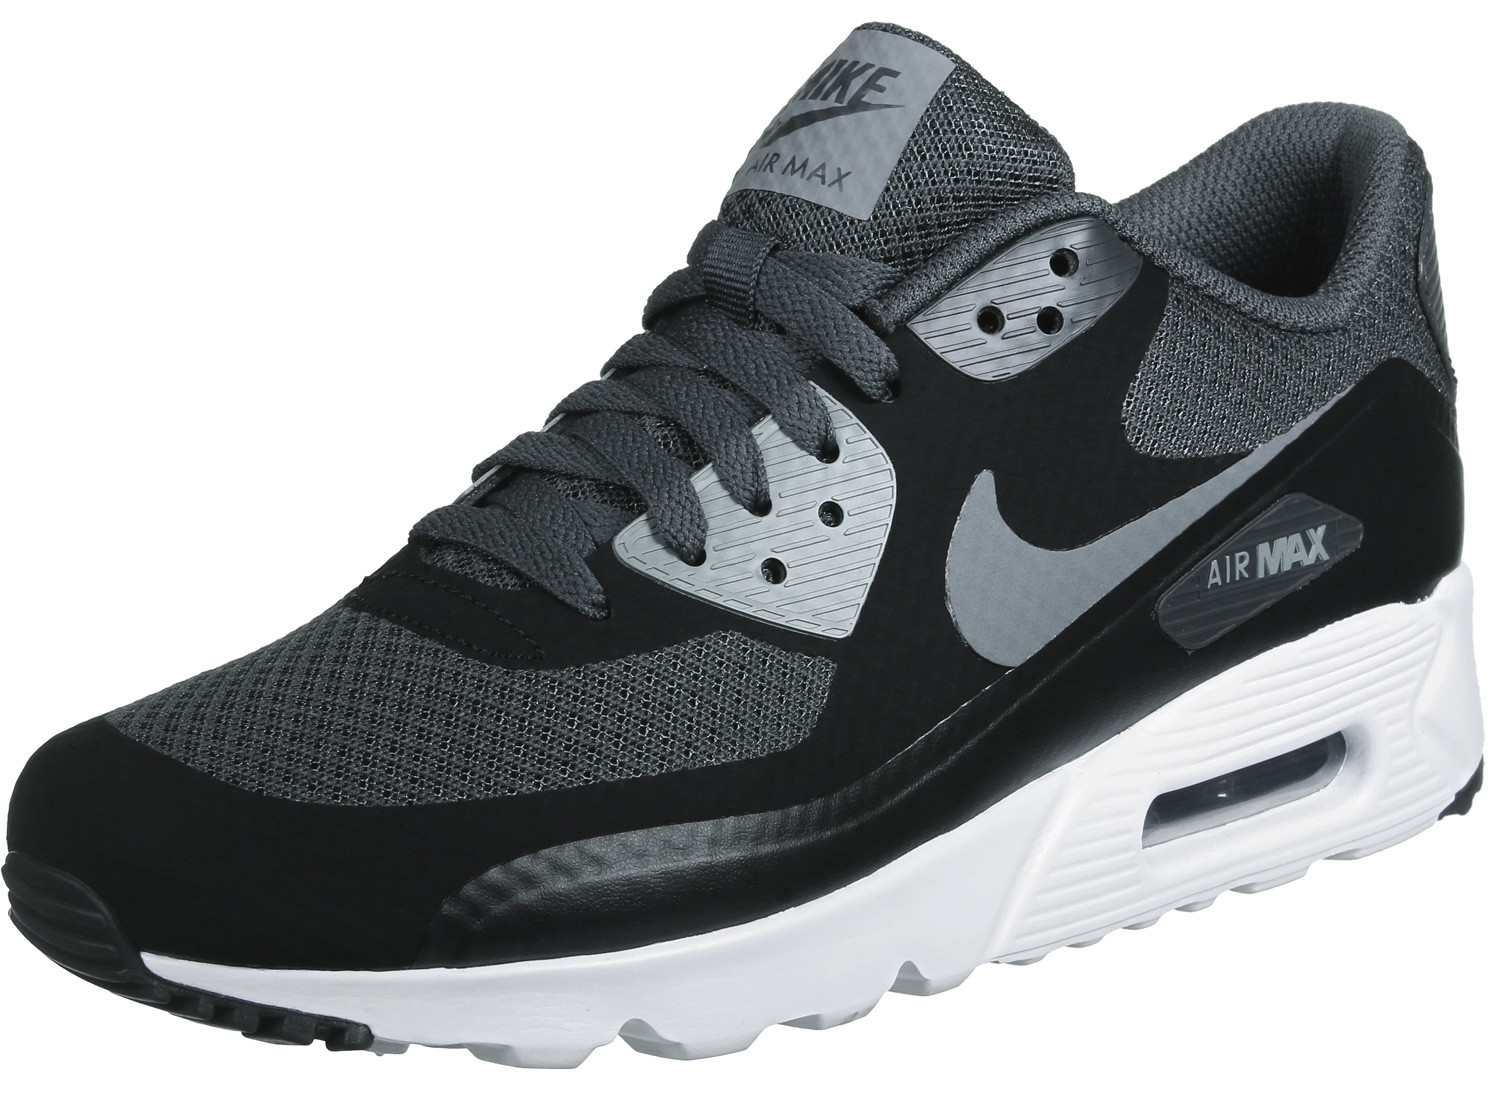 Air Max 90 Essential atractivo Nike Air Max 90 Ultra Essential Schuhe Schwarz Grau Weiß Of 36  Adorable Air Max 90 Essential